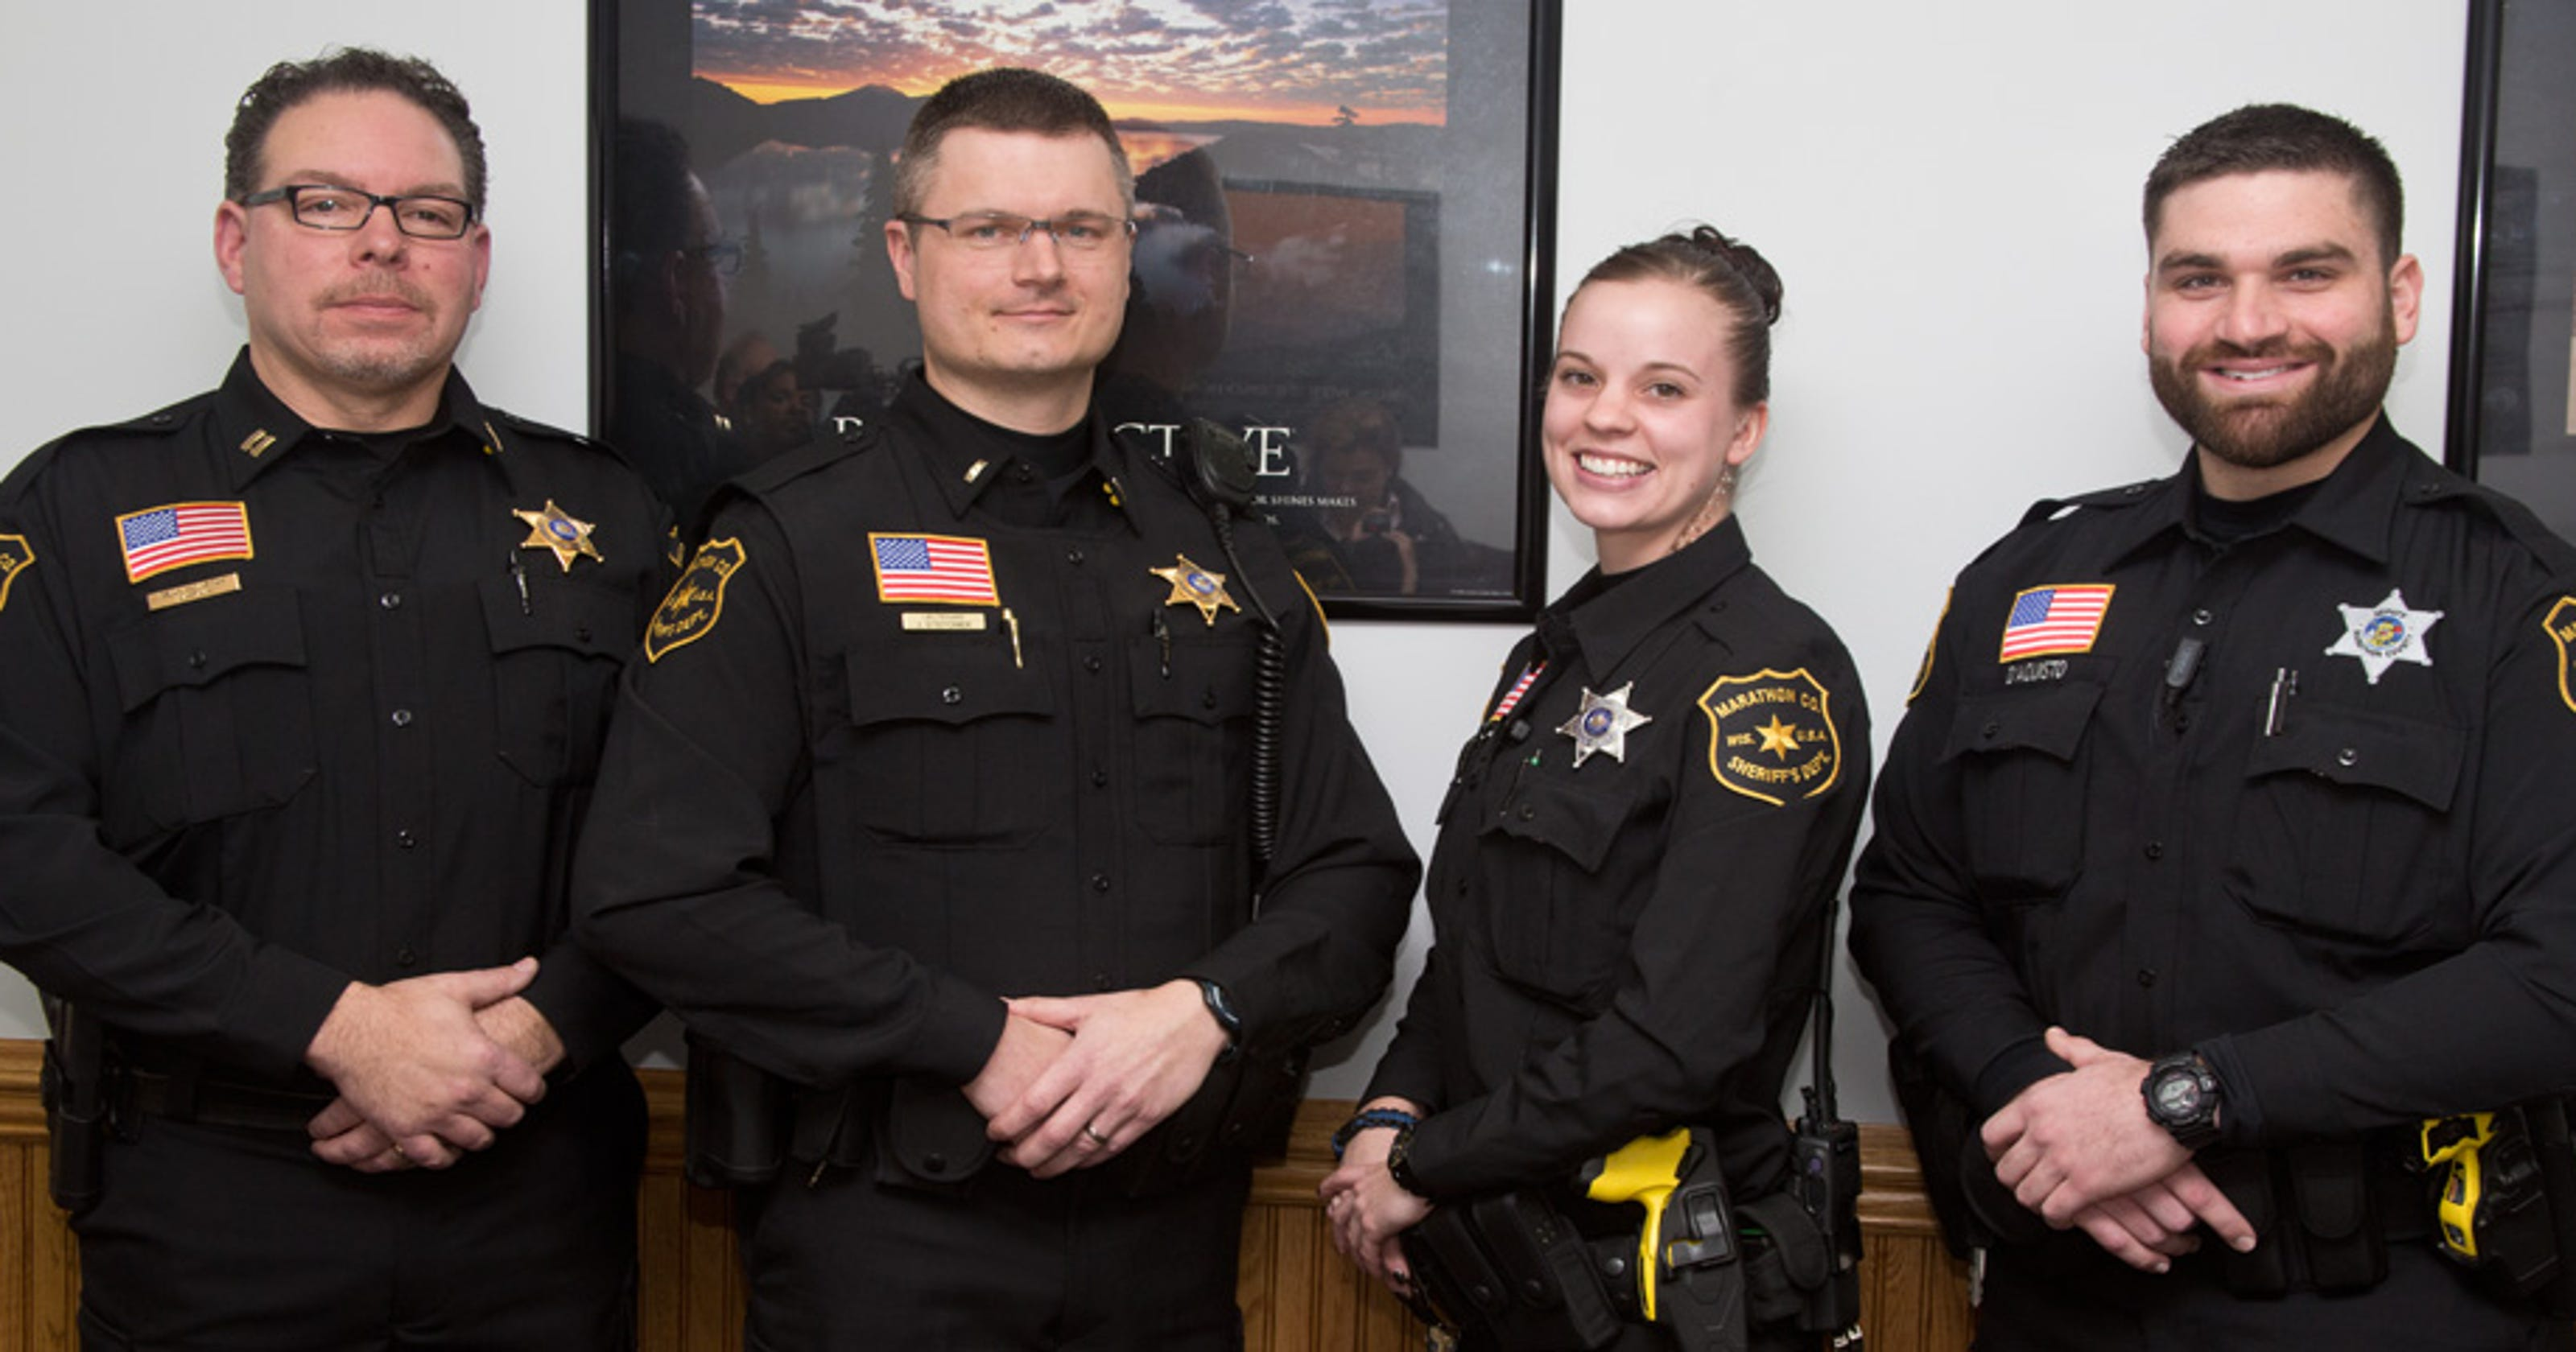 Marathon County Sheriff's Office gets new uniforms